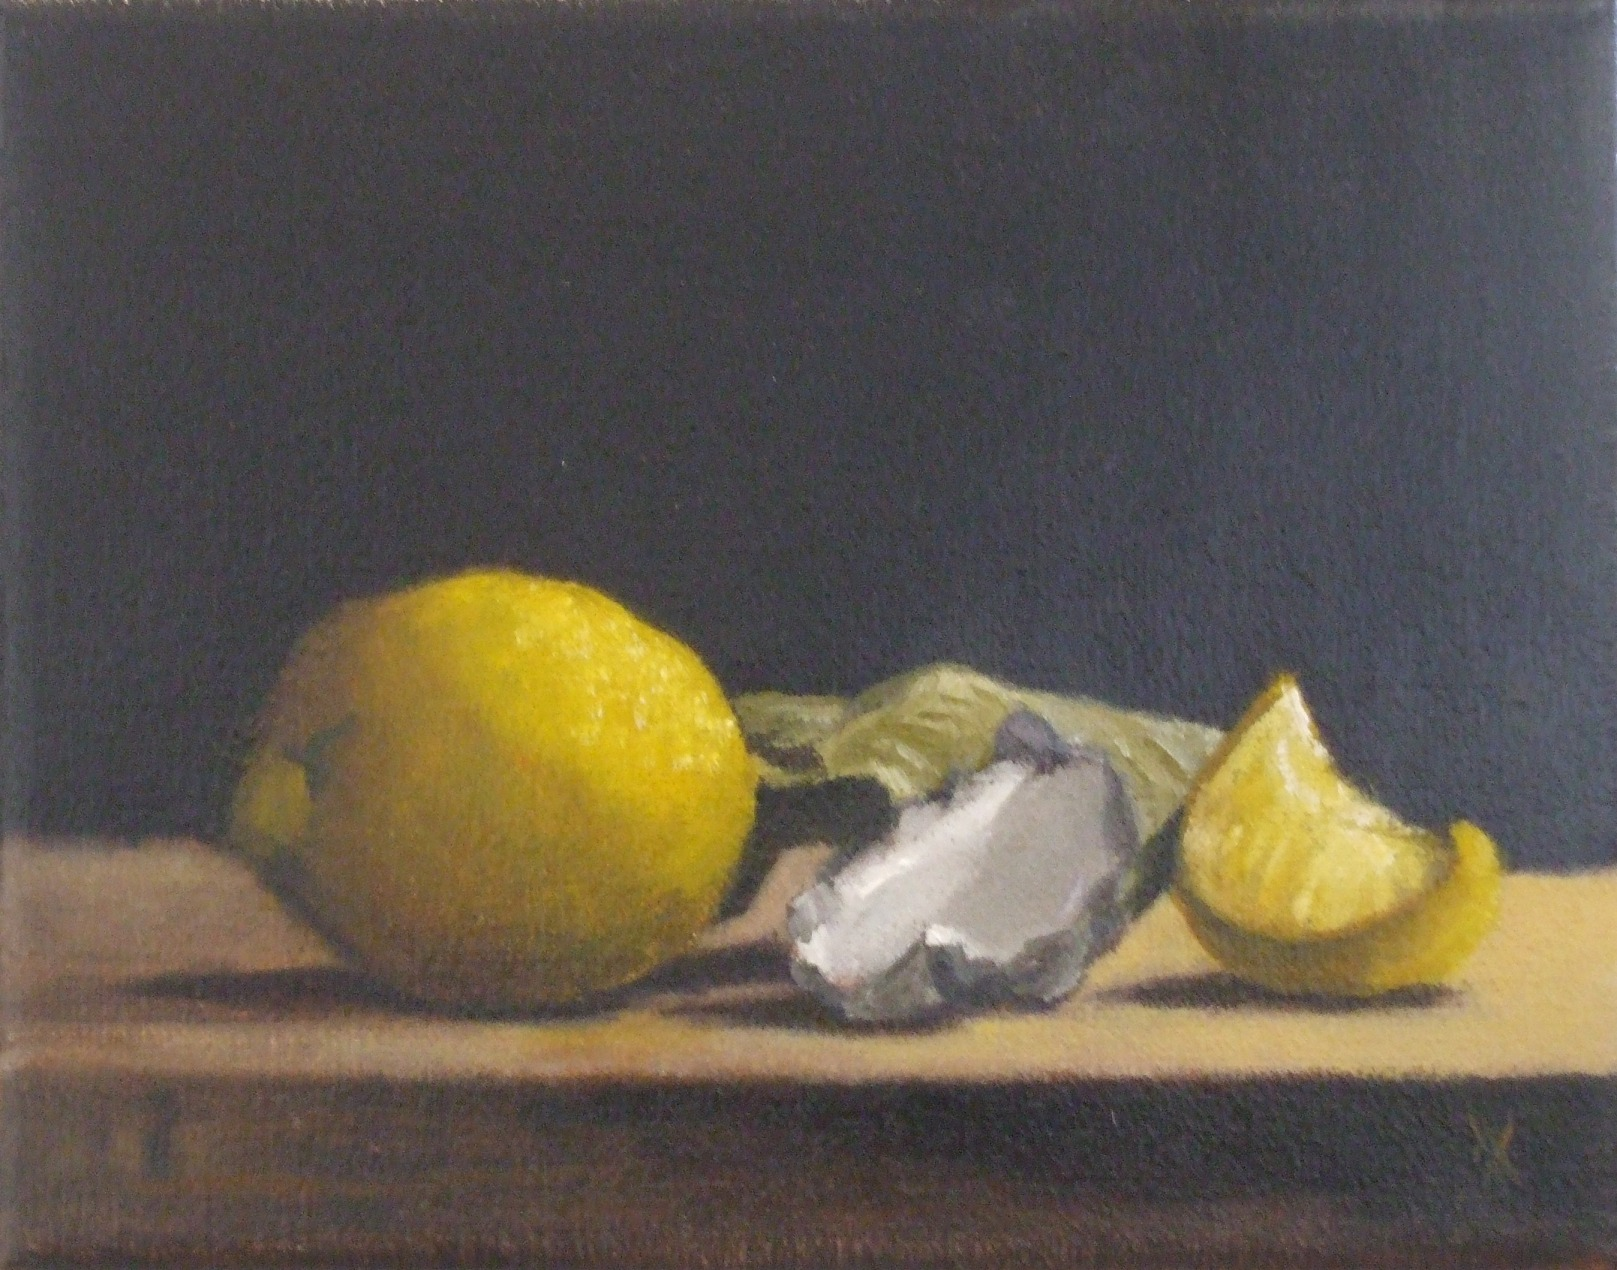 Commended: Lemon Garlic Artist: Phil Went Medium: Oil on linen